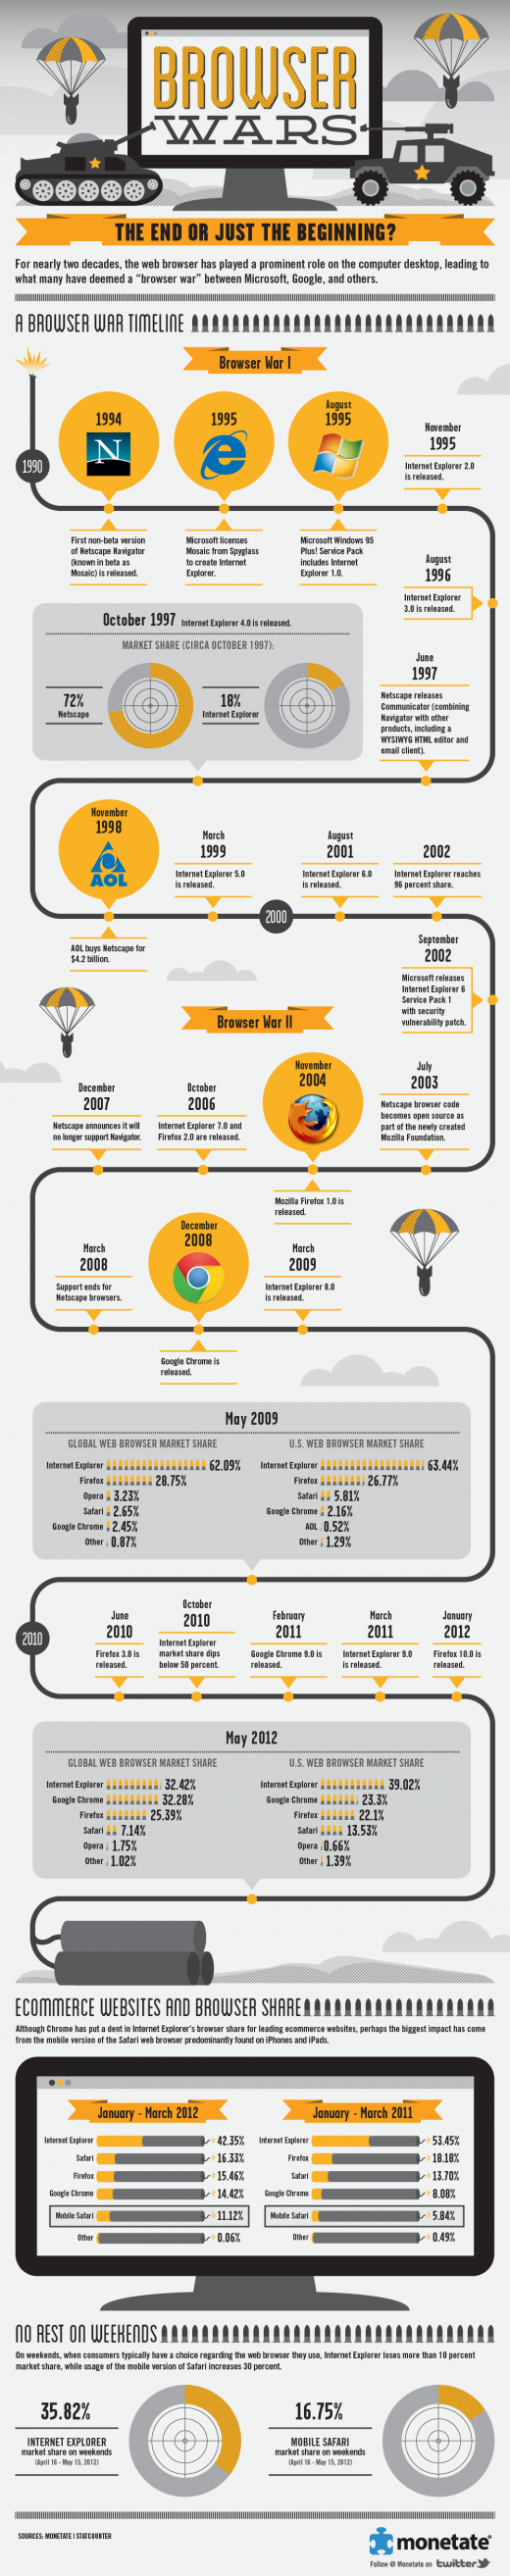 monetate browser wars infographic 520x2627 Mobile Safari is the fastest growing browser, and other stats from the Great Browser Wars